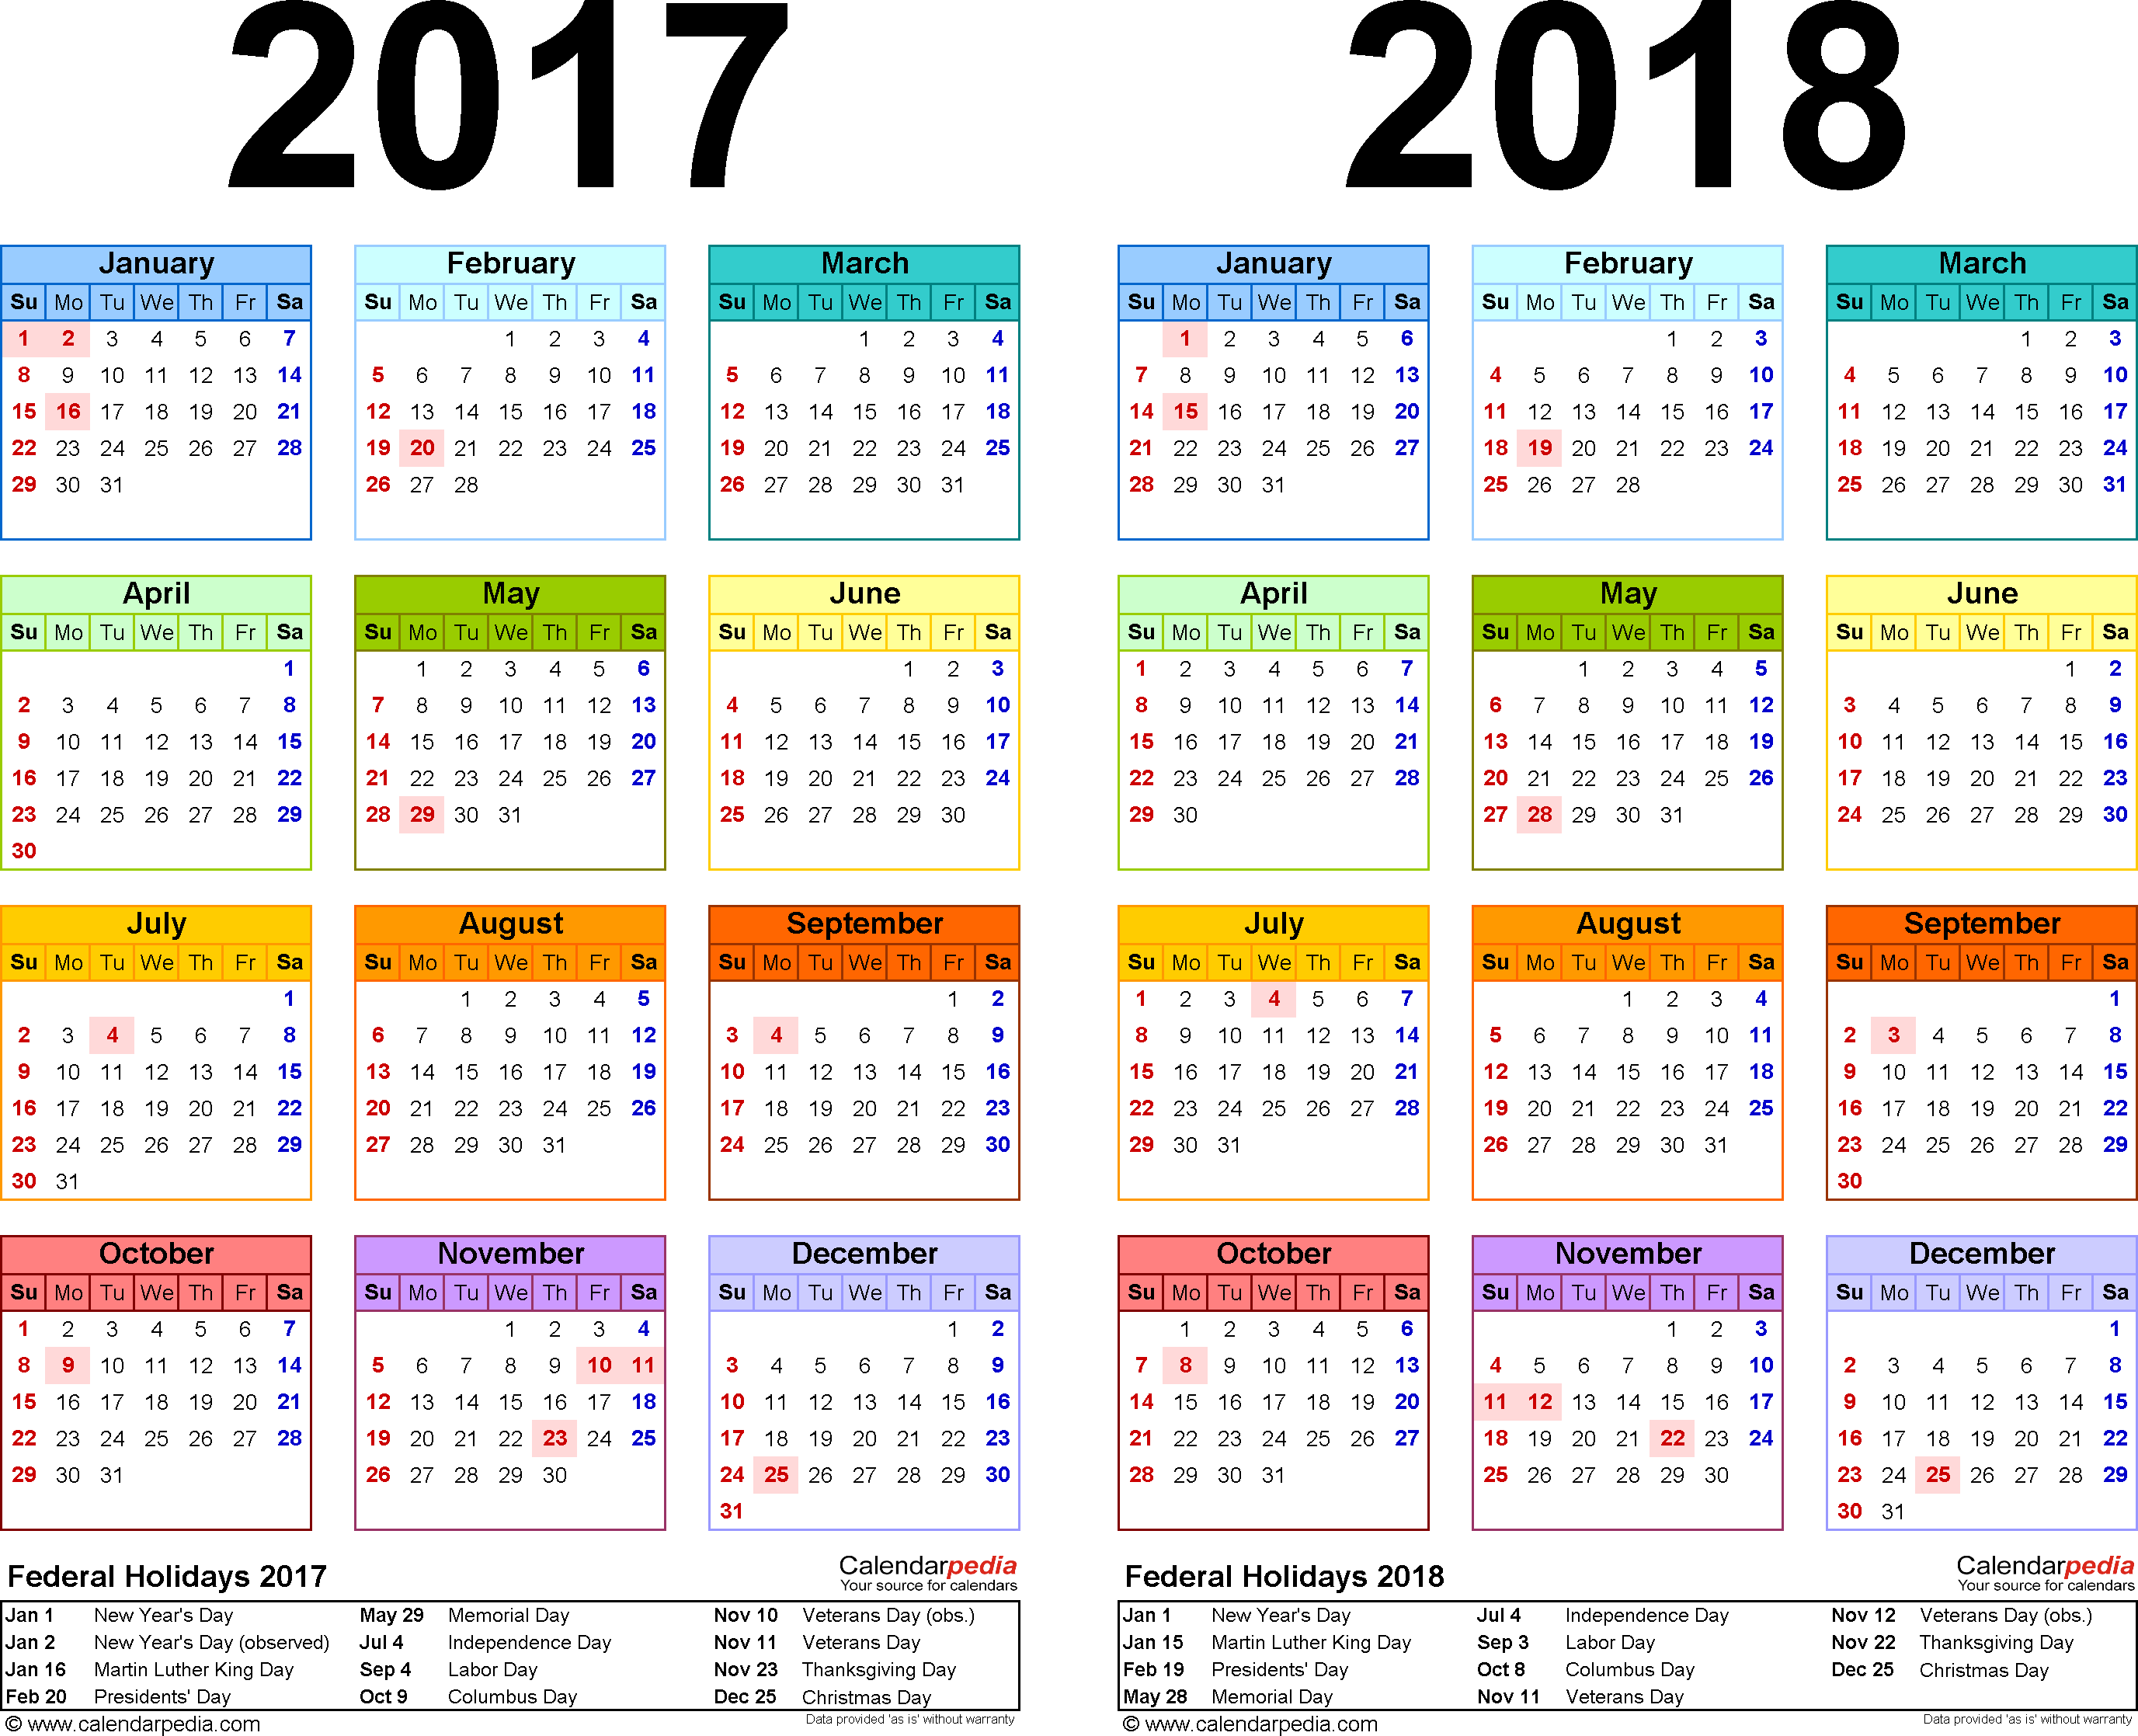 template 2 excel template for two year calendar 20172018 landscape orientation